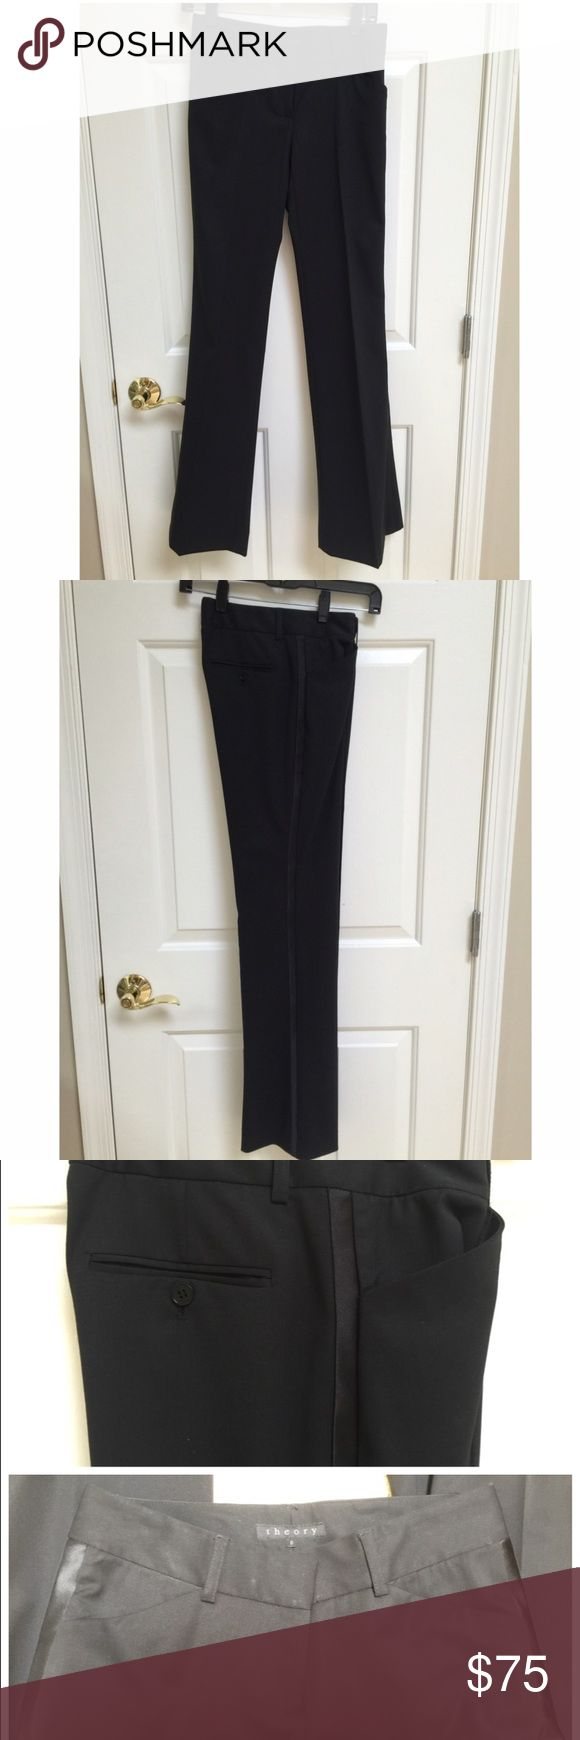 """Theory Black Wool Tuxedo Pant Size 0 Brand New, never worn. Black wool tuxedo pant with satin stripes down sides. 34"""" approx inseam. 90% wool, 8% polyamide, 2% elastane. Theory Pants Trousers"""